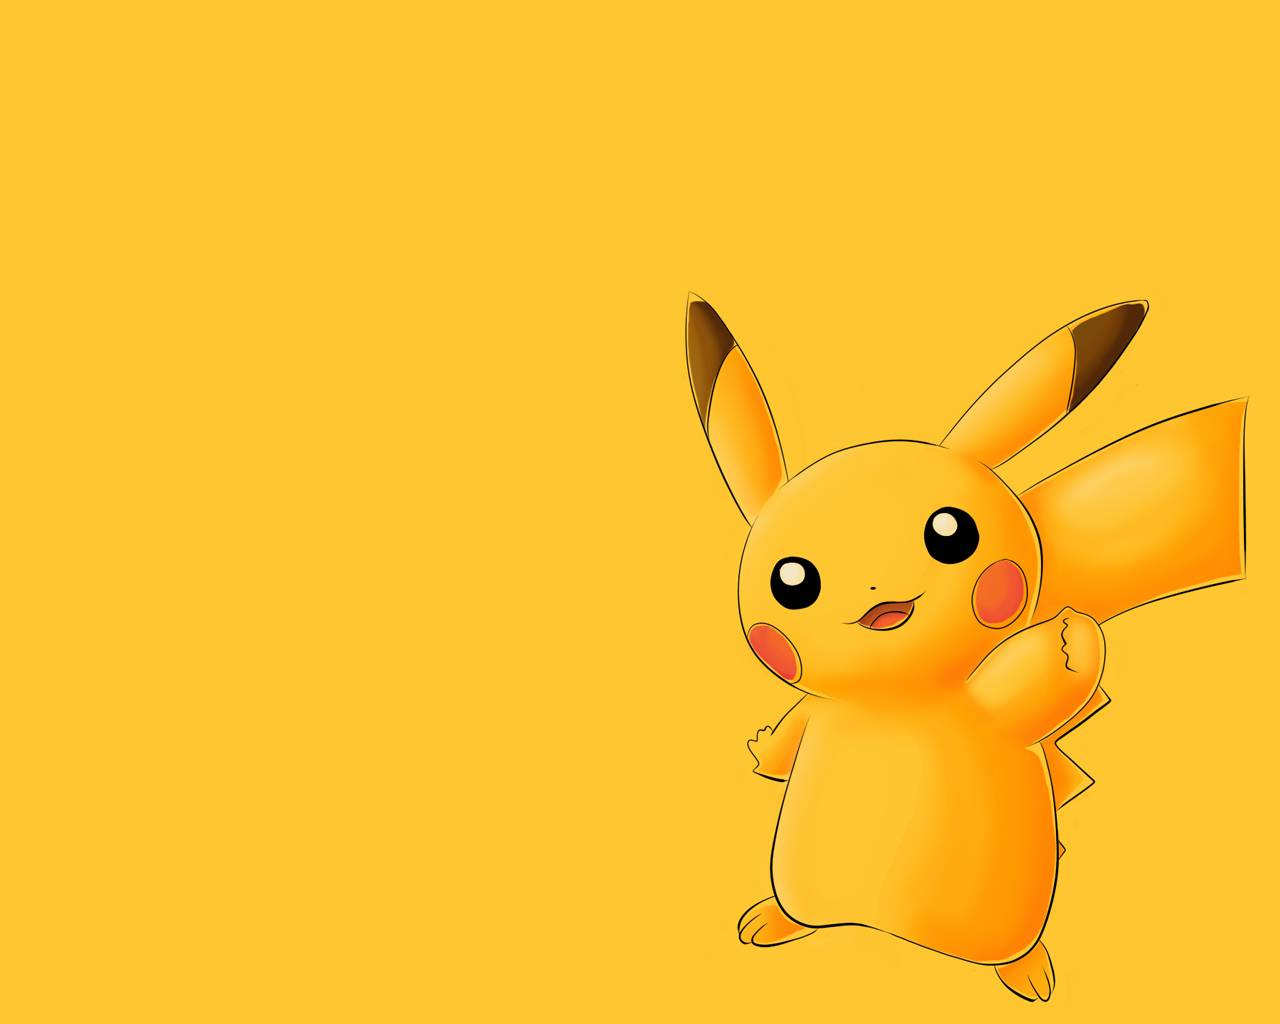 Pikachu Wallpaper A yellow wallpaper with Pikachu on it 1280x1024